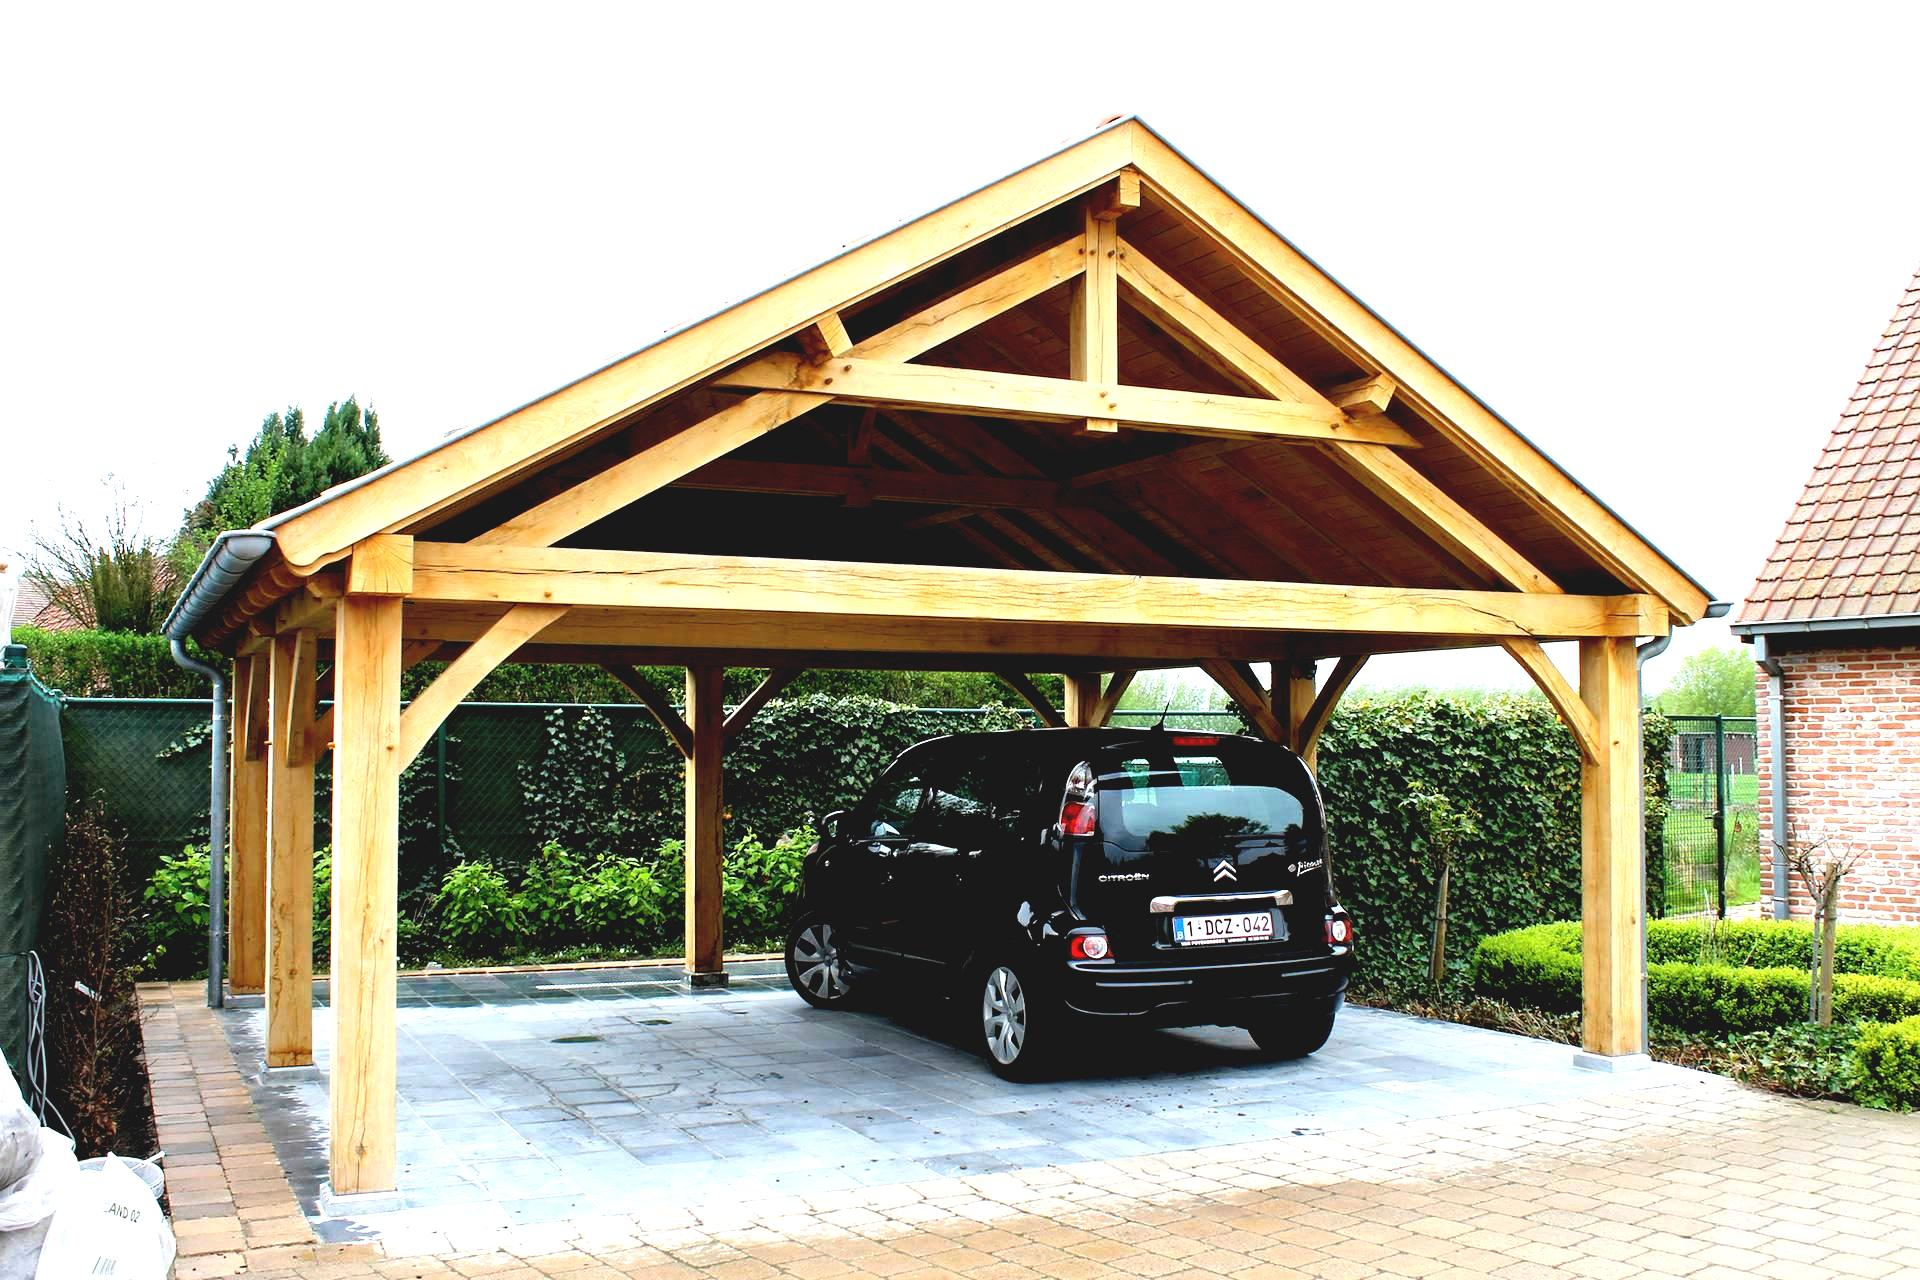 full size of carports easy carport plans cheap frames covers flat kits angled metal roof steel building